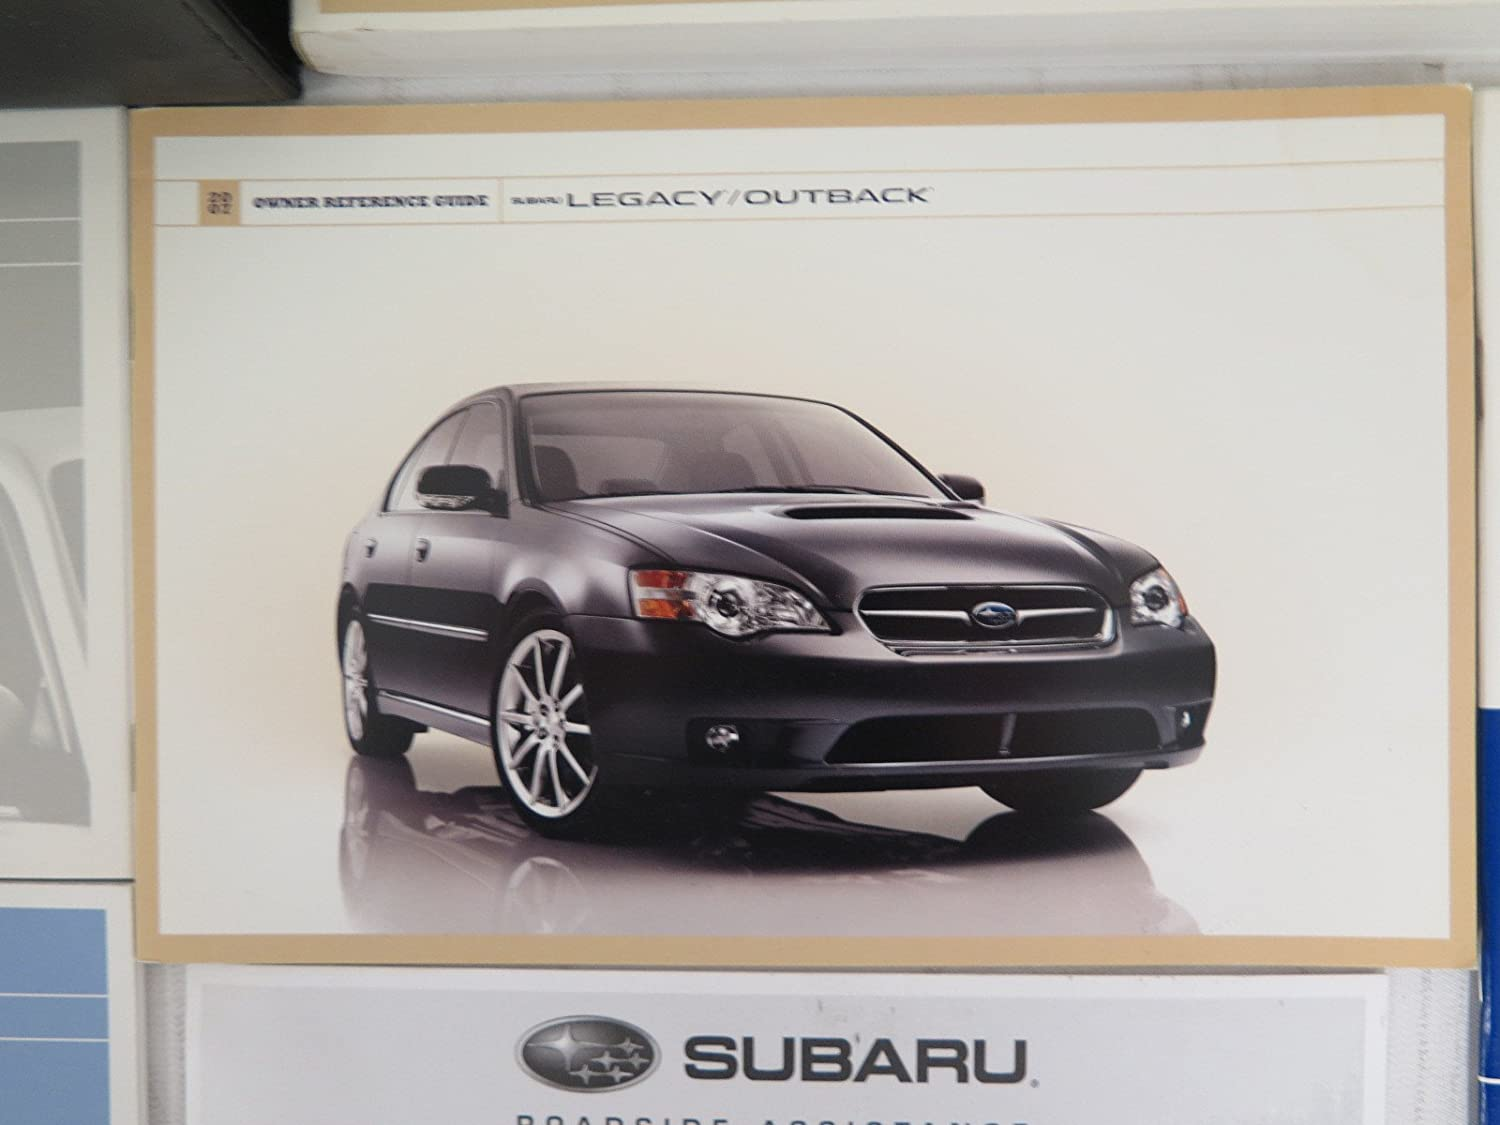 2007 subaru legacy outback owners manual user guide manual that amazon com 2007 subaru legacy outback owners manual subaru car rh amazon com 2007 subaru outback fandeluxe